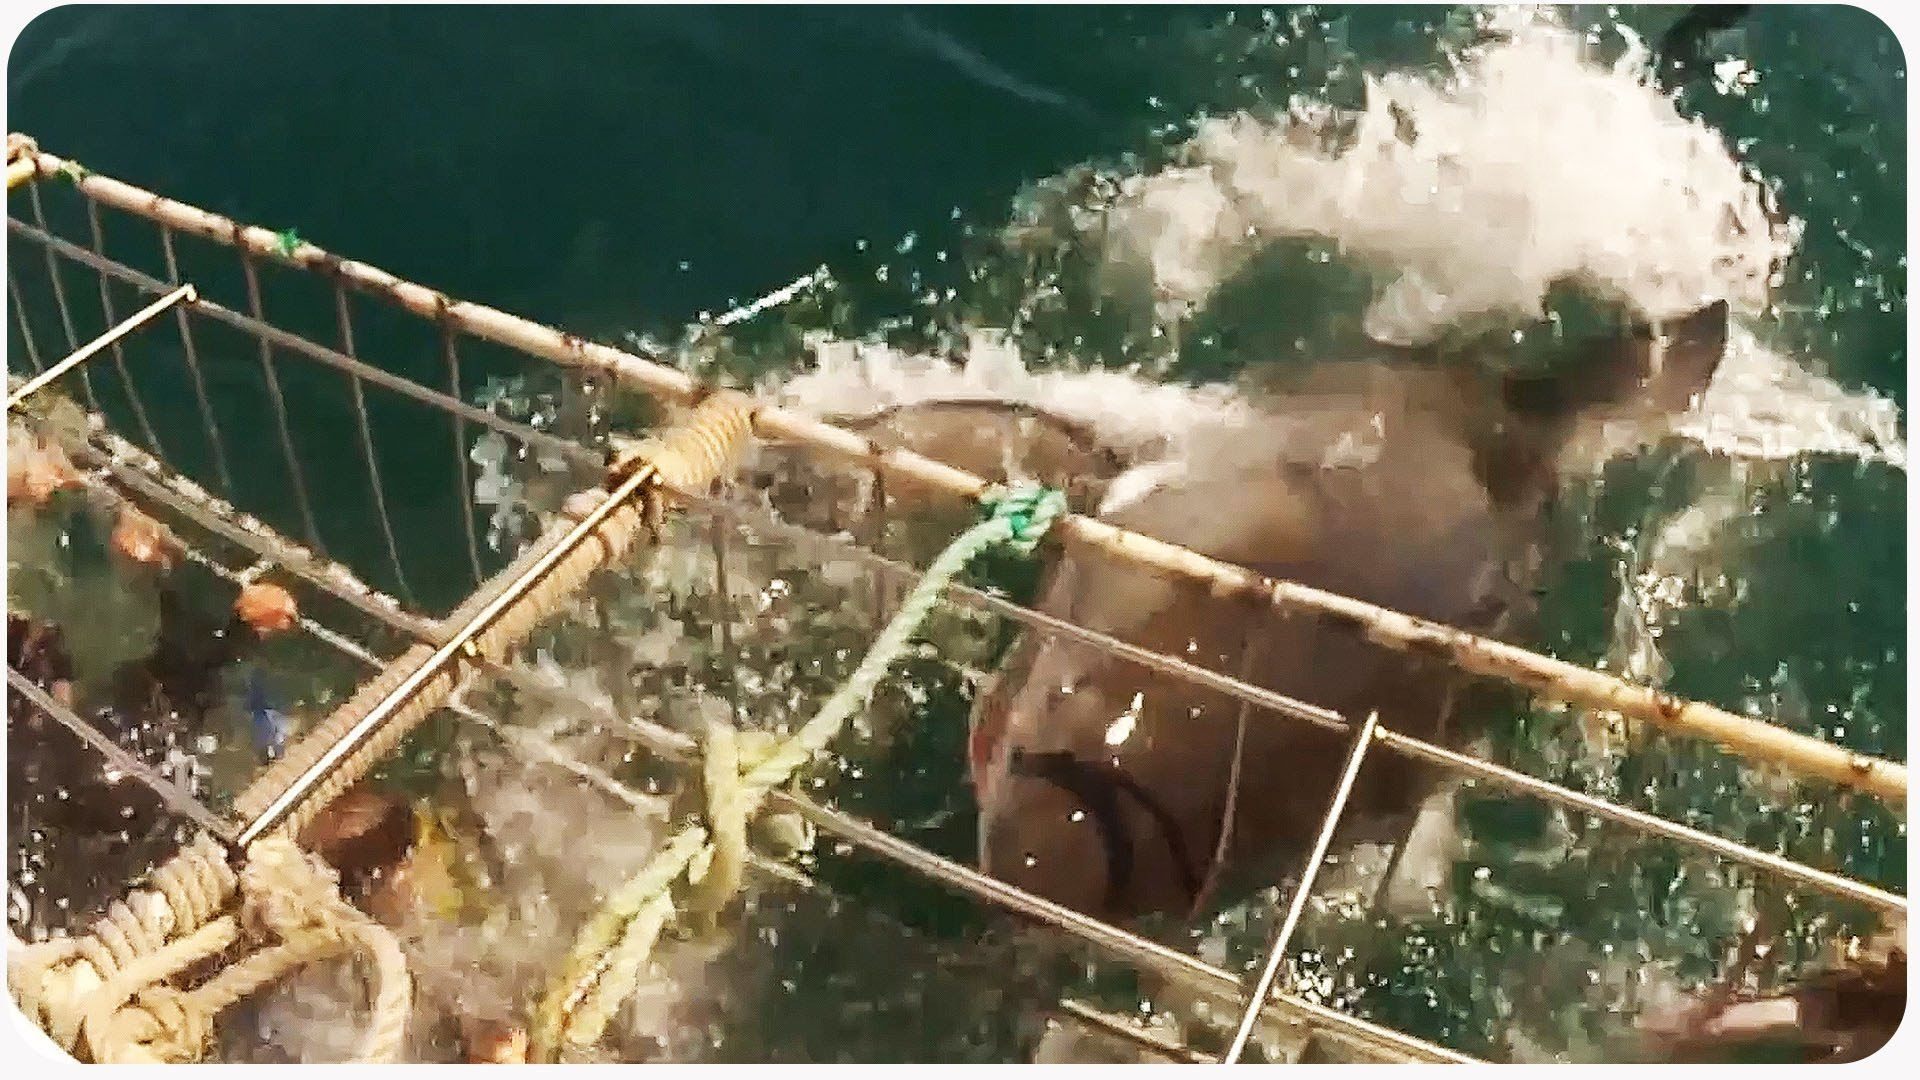 Vicious Great White Shark Attacks Cage, Nearly Gets To Diver